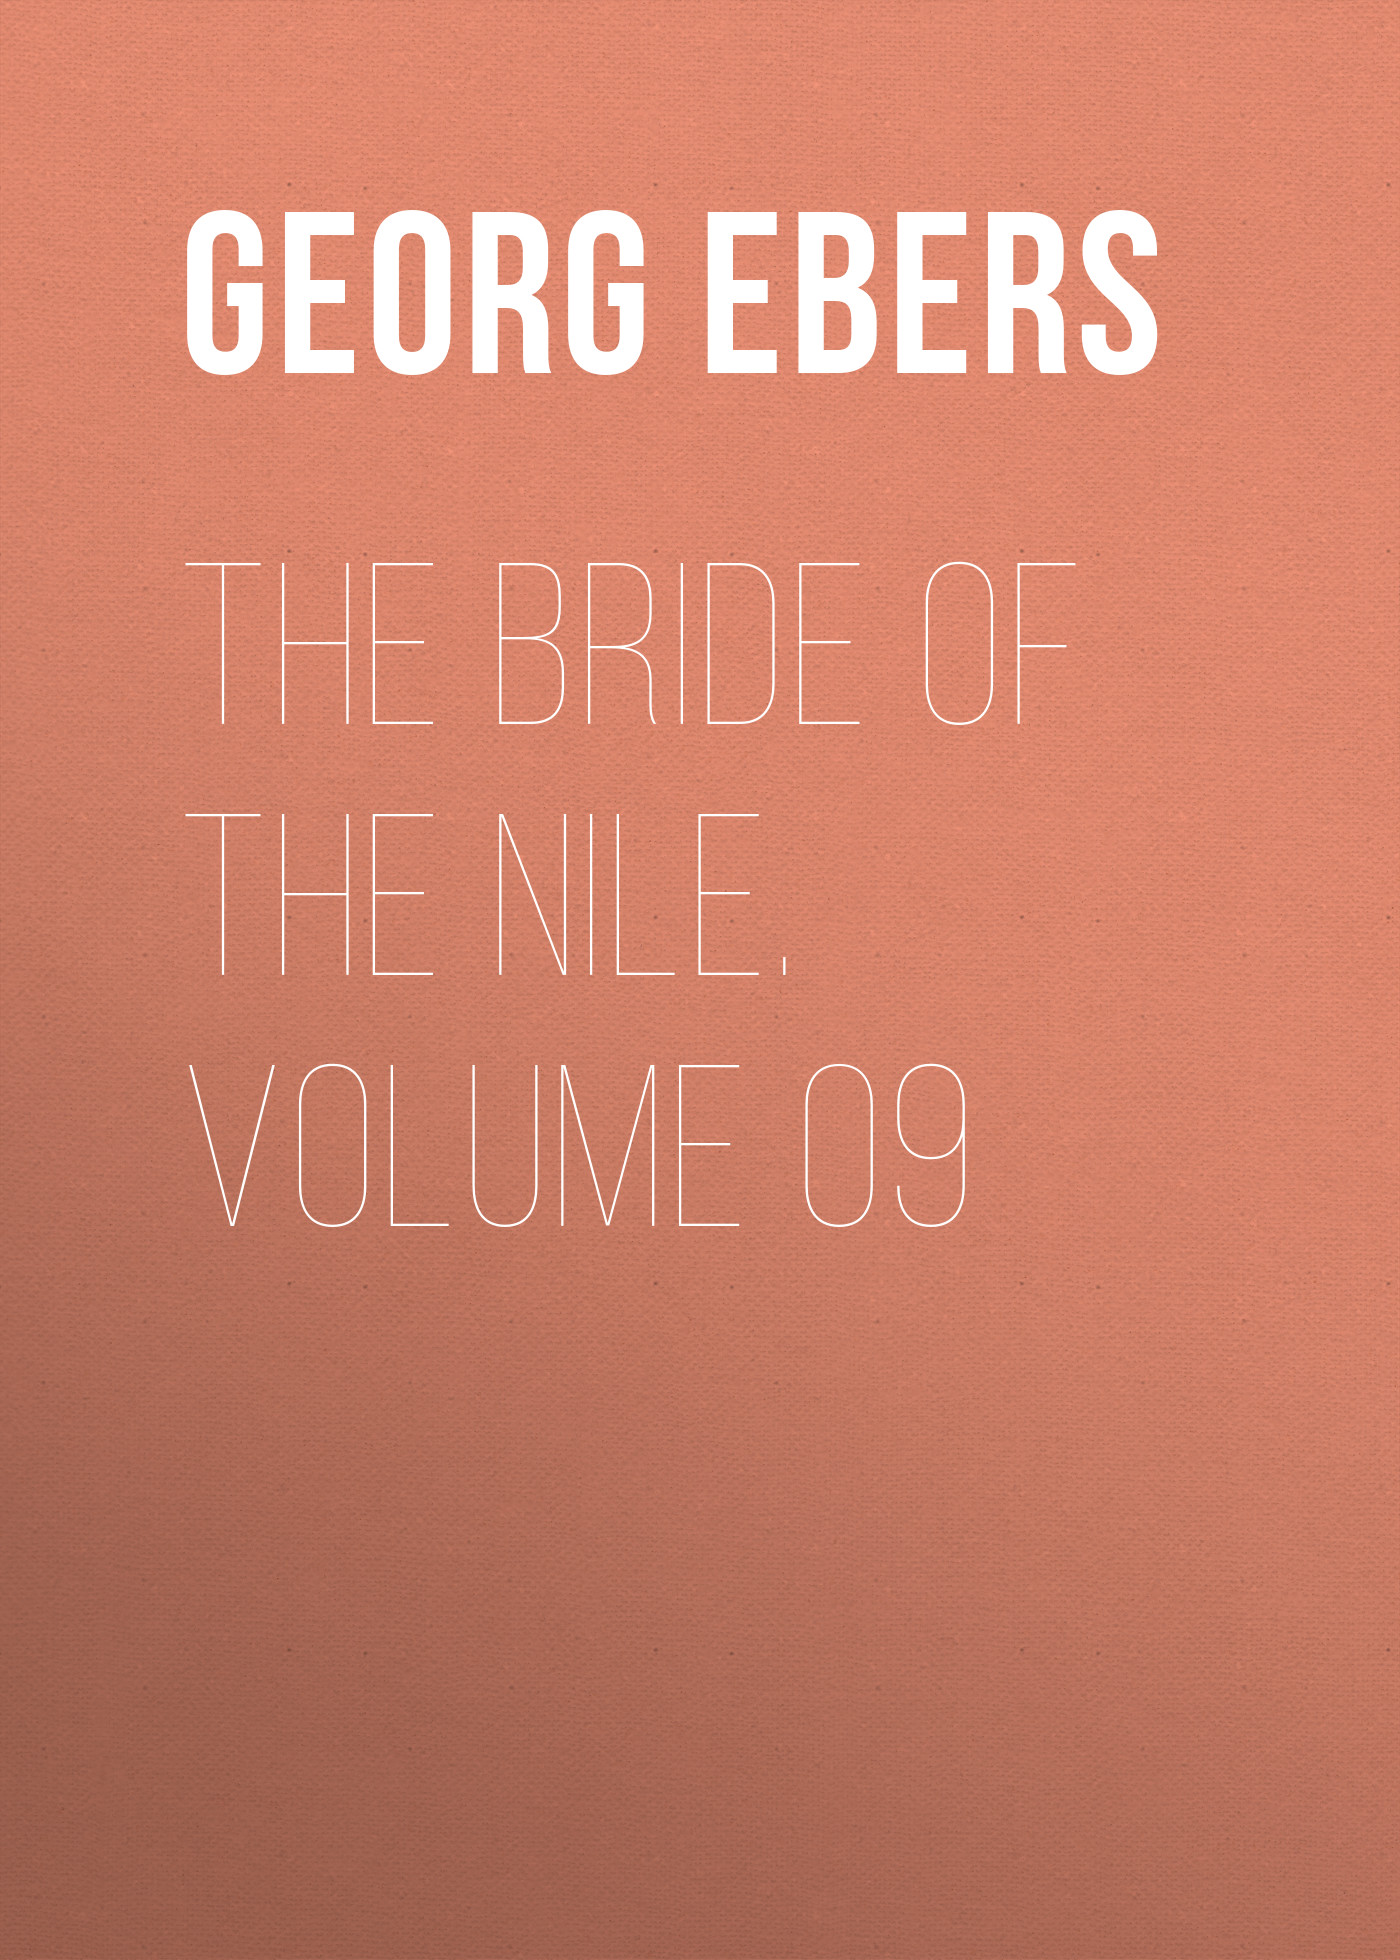 Georg Ebers The Bride of the Nile. Volume 09